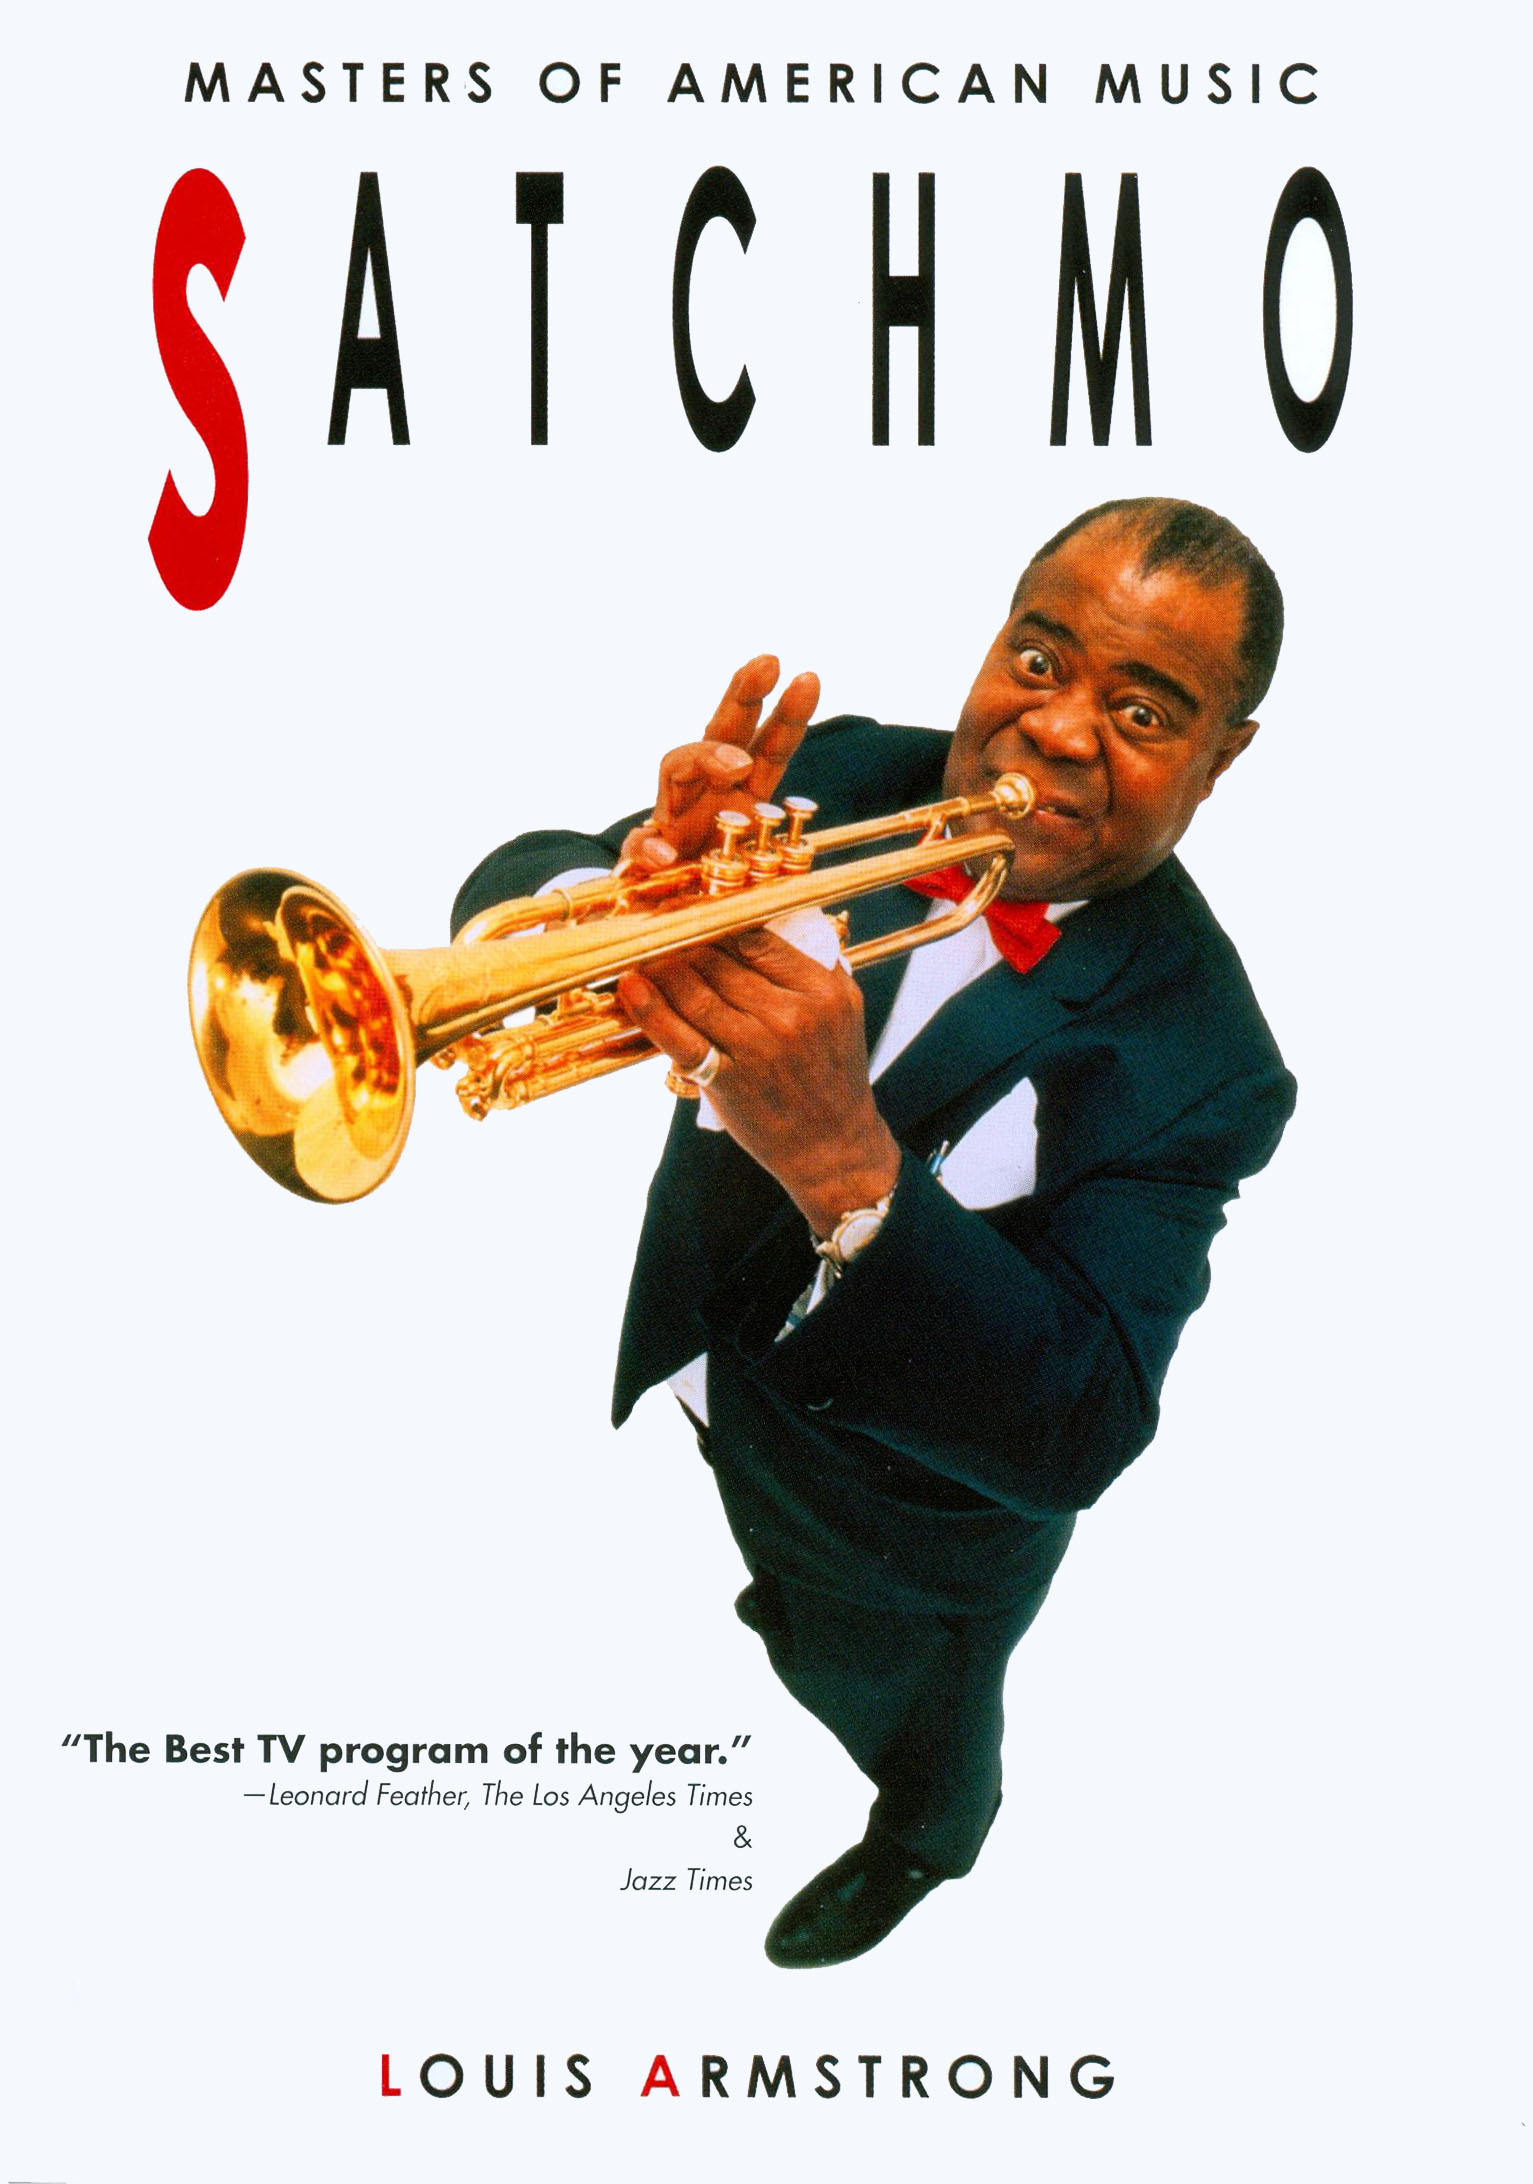 the life and music of louis satchmo armstrong If you're researching the life of louis armstrong and his influence in music, feel free to use a paper example provided here below.